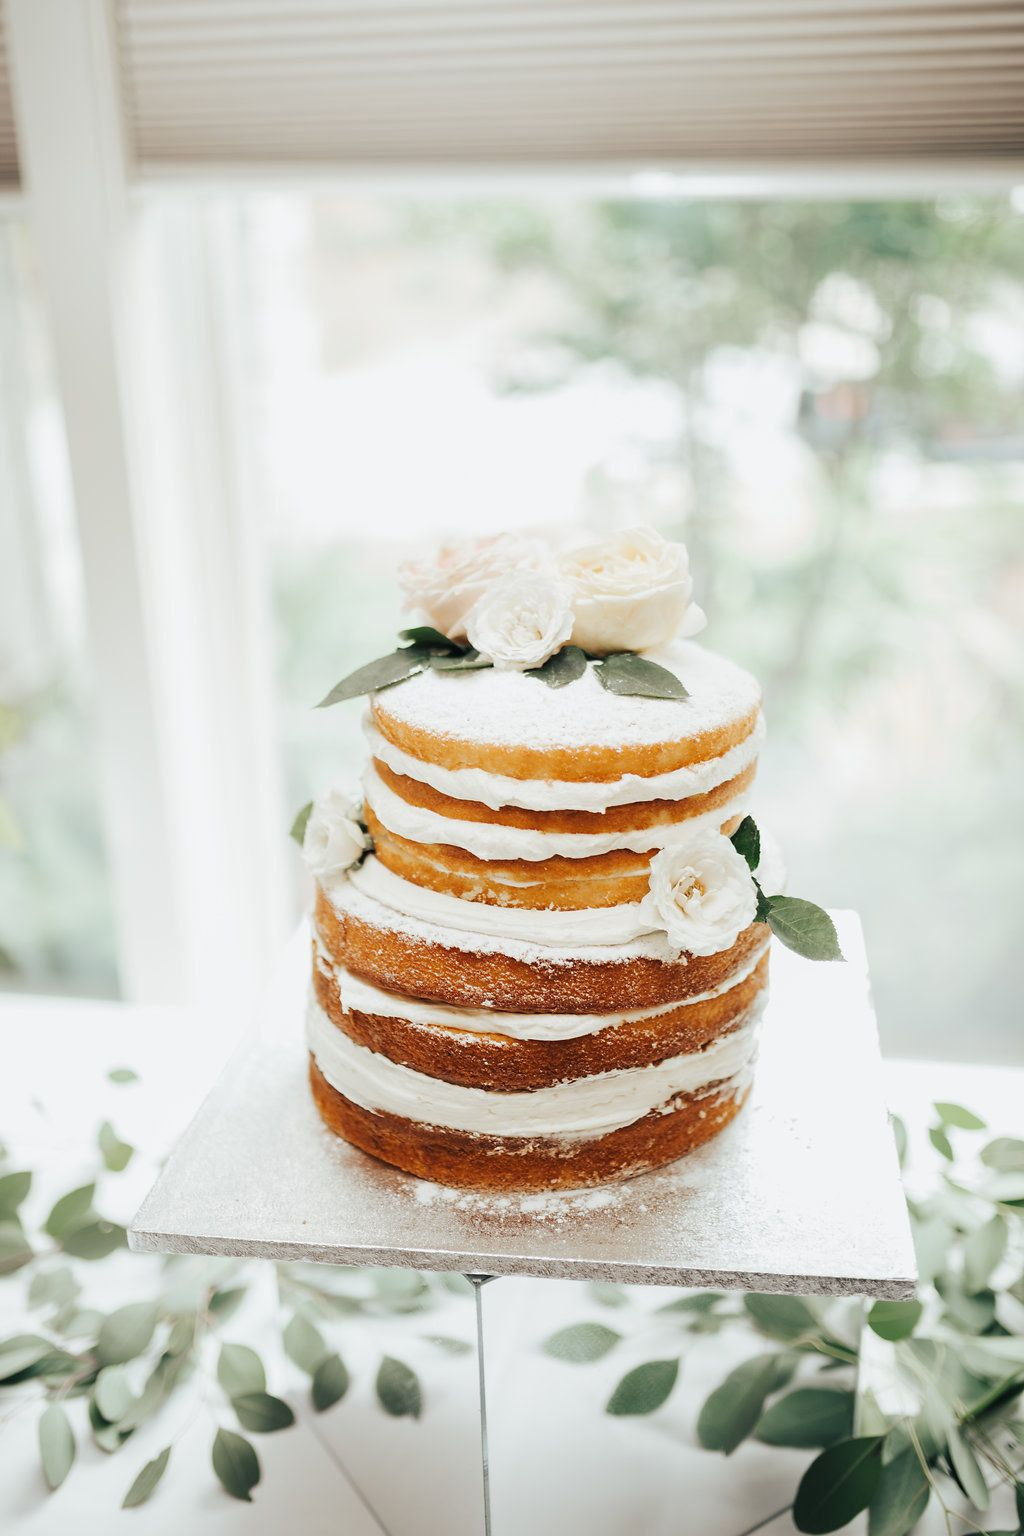 12 Fall Wedding Cakes - Fall Themed Wedding Cake Ideas